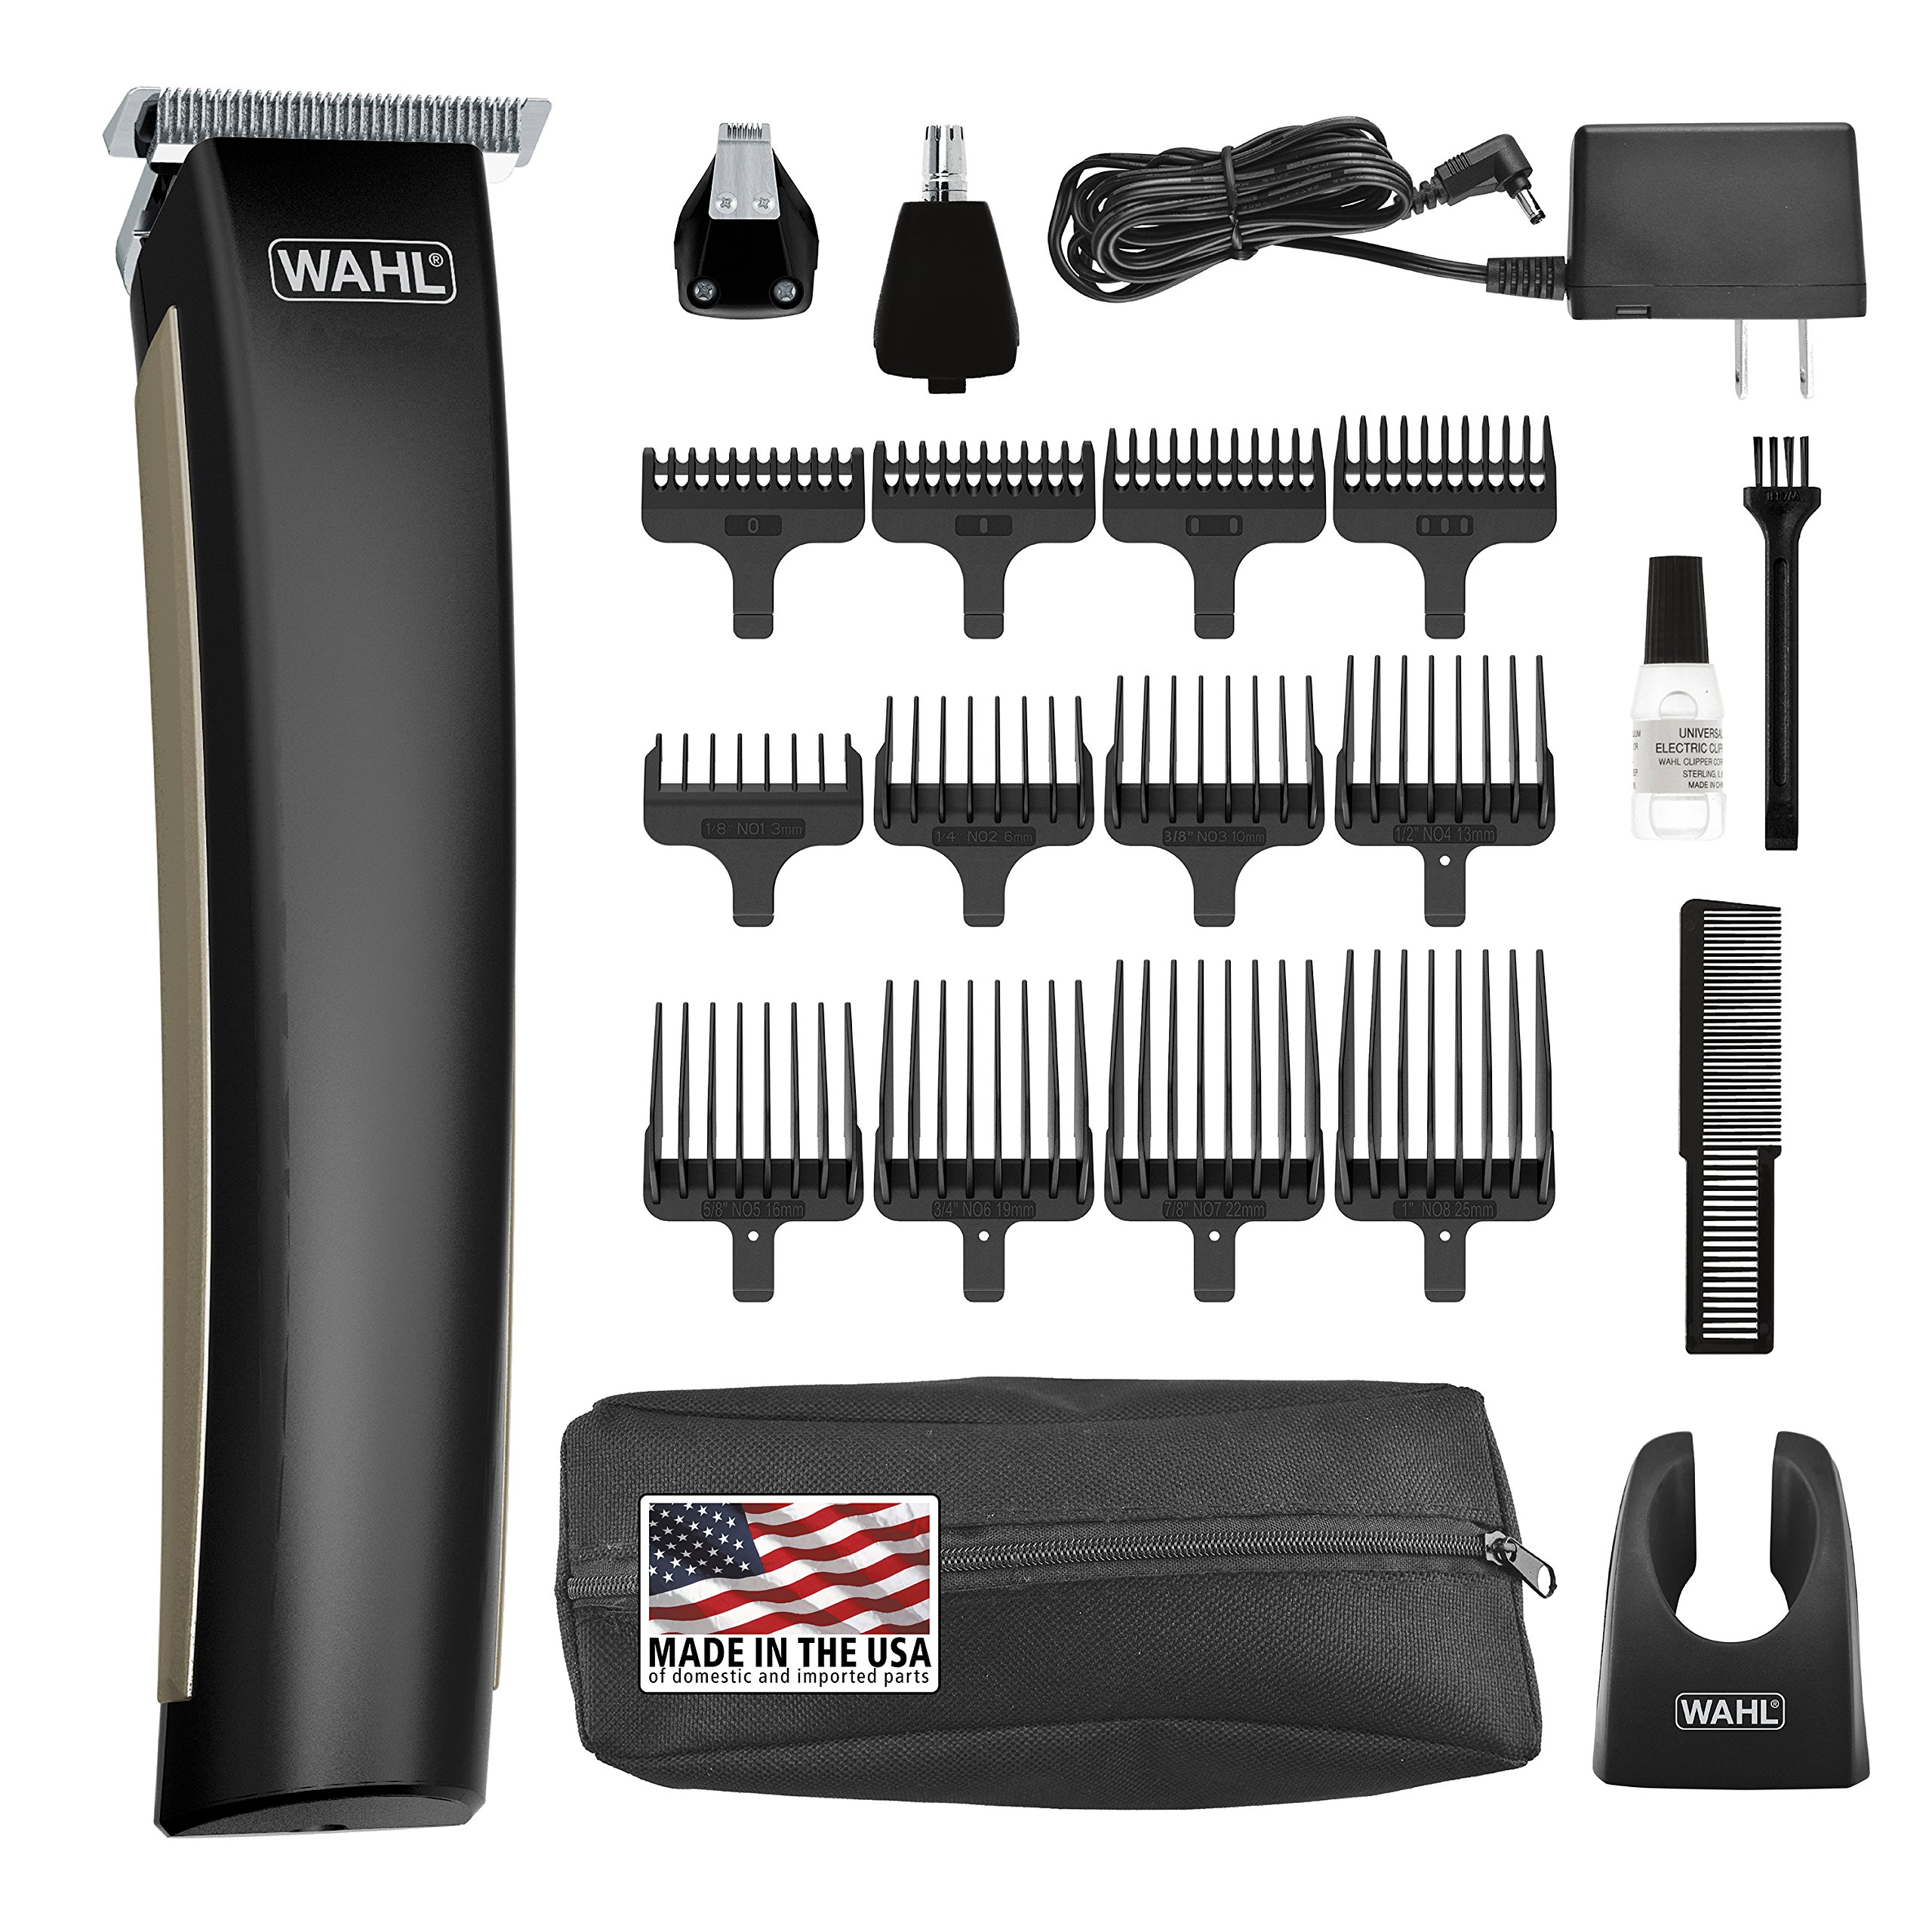 Wahl Clipper Lithium Ion 2.0 Beard Trimmer, rechargeable all in one trimmer for beard, mustache, stubble, ear, nose, body grooming, holiday Gift for men, by the Brand used by Professionals #9886 by Wahl